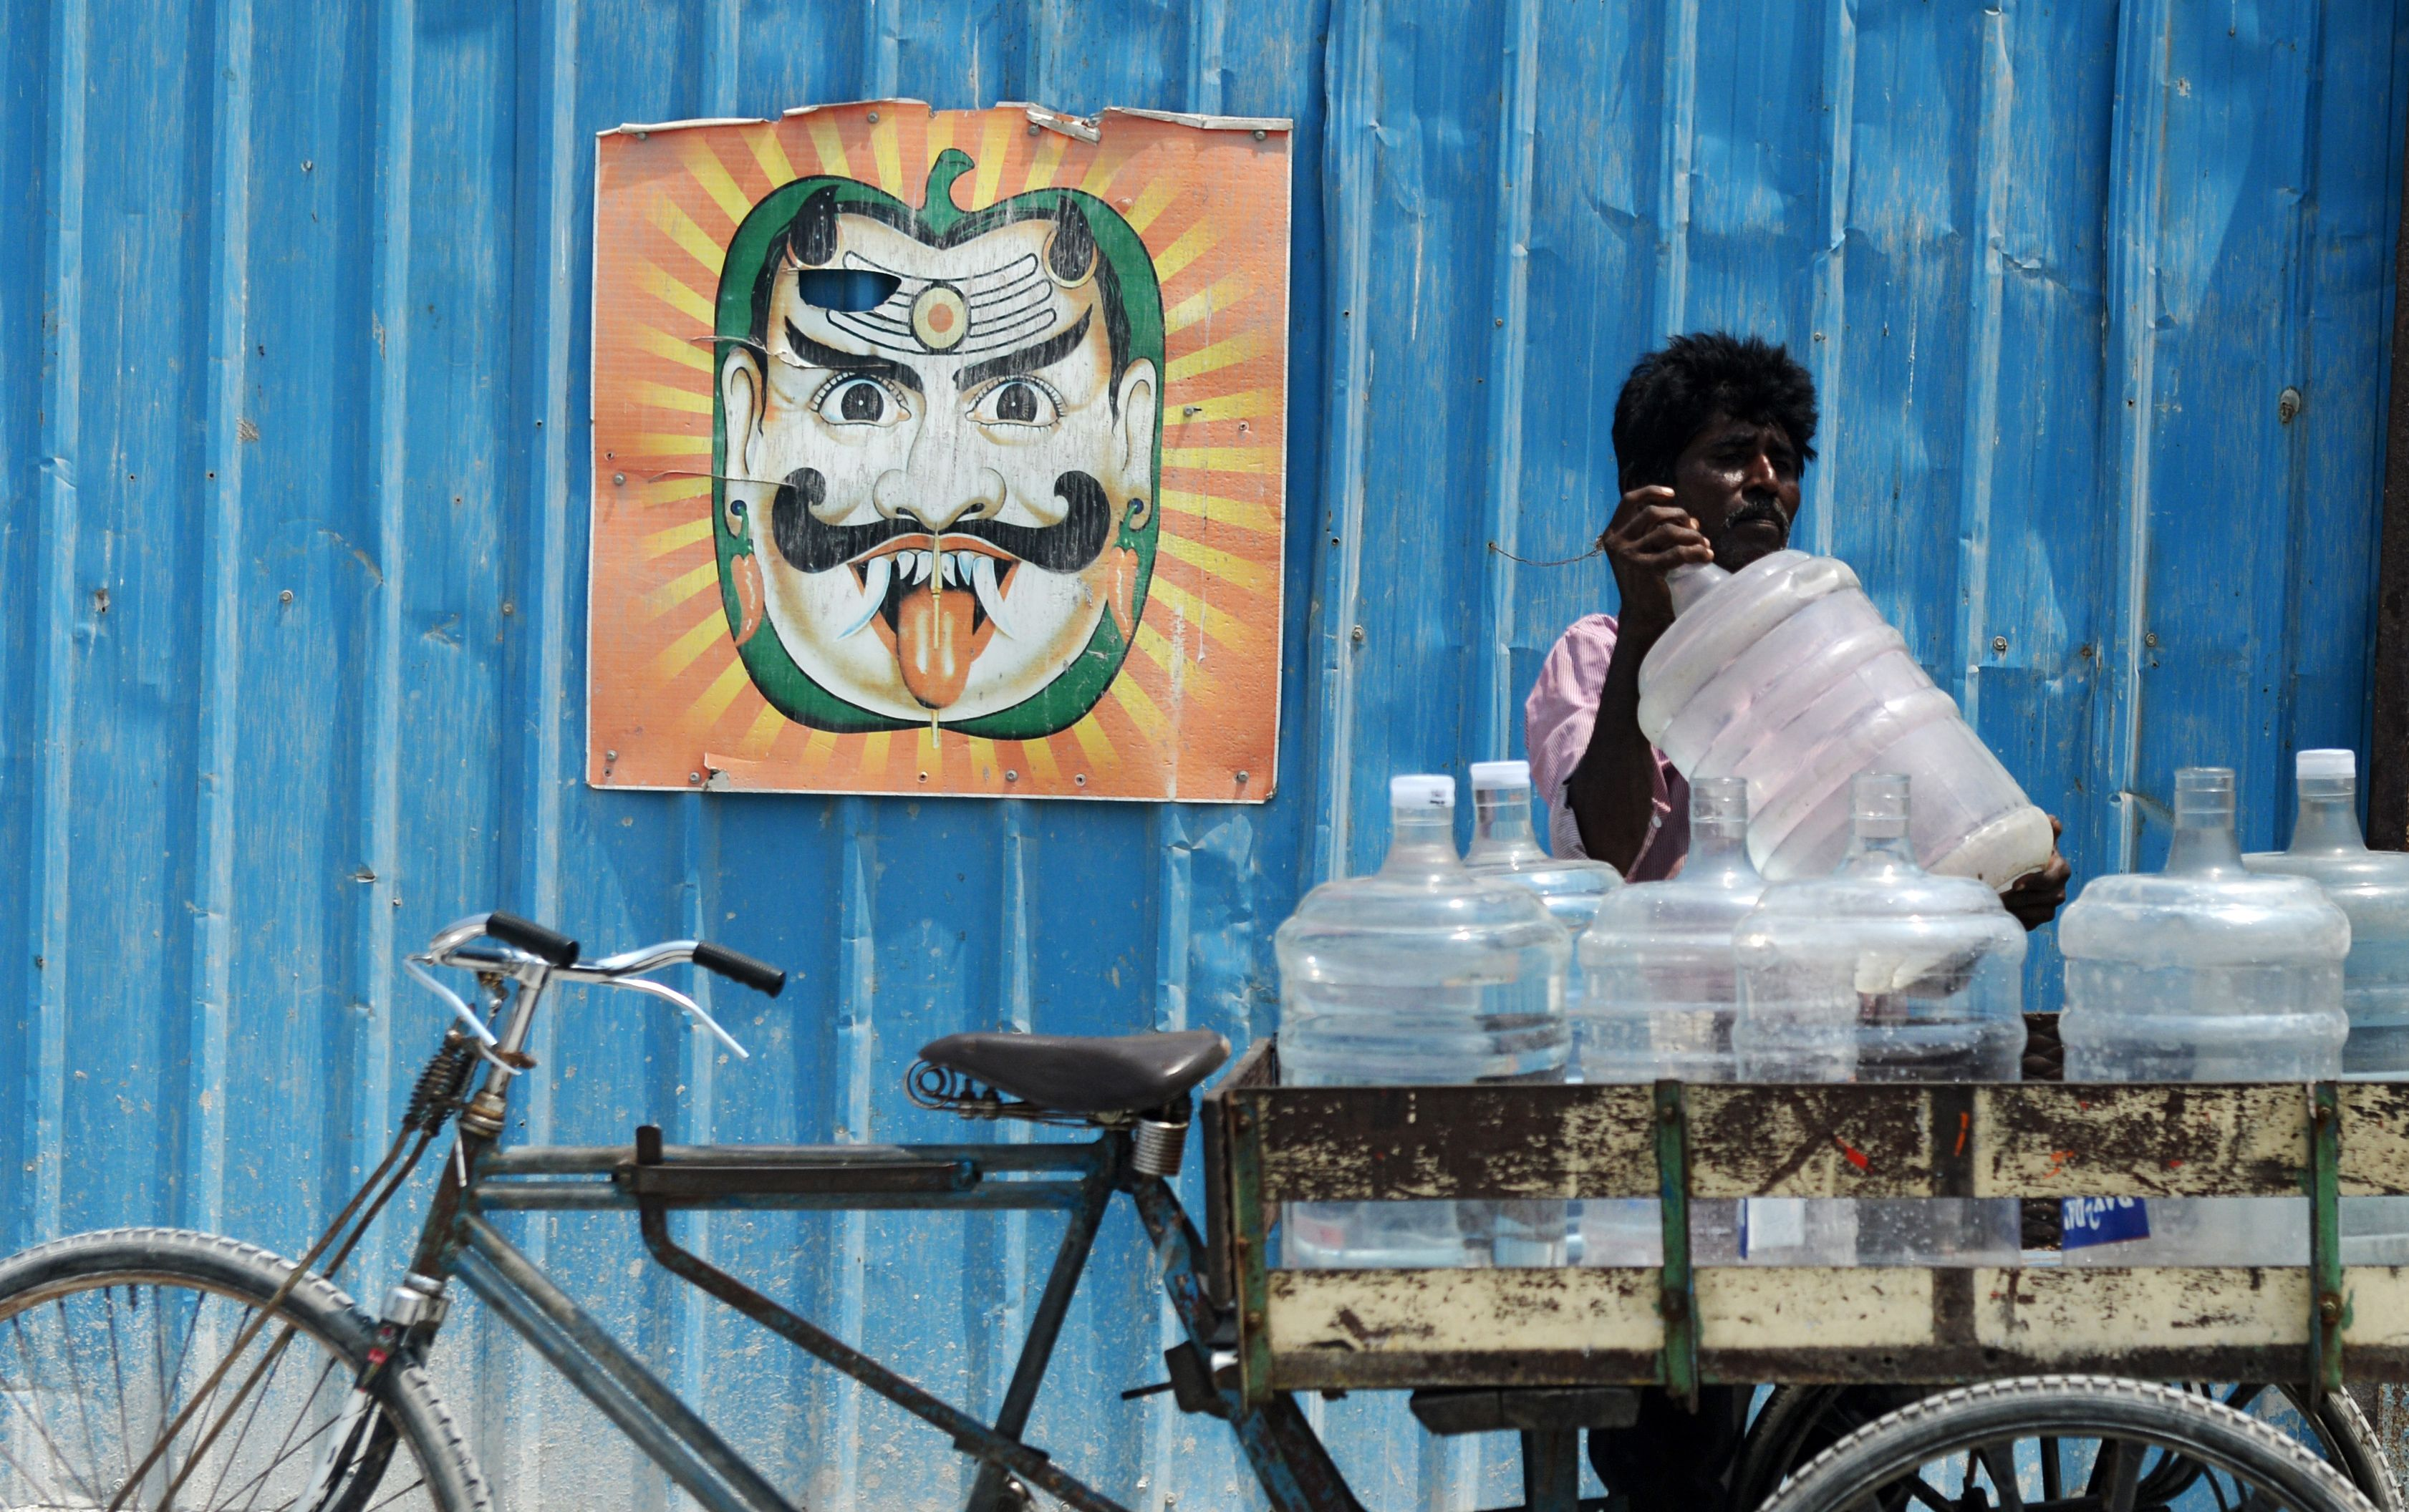 TOPSHOT - An Indian water vendor loads his cart with 20 litre water bottles in Chennai on March 21, 2018. International World Water Day is marked annually on March 22 to focus global attention on the importance of water and to advocate for sustainable water resource management. / AFP / ARUN SANKAR